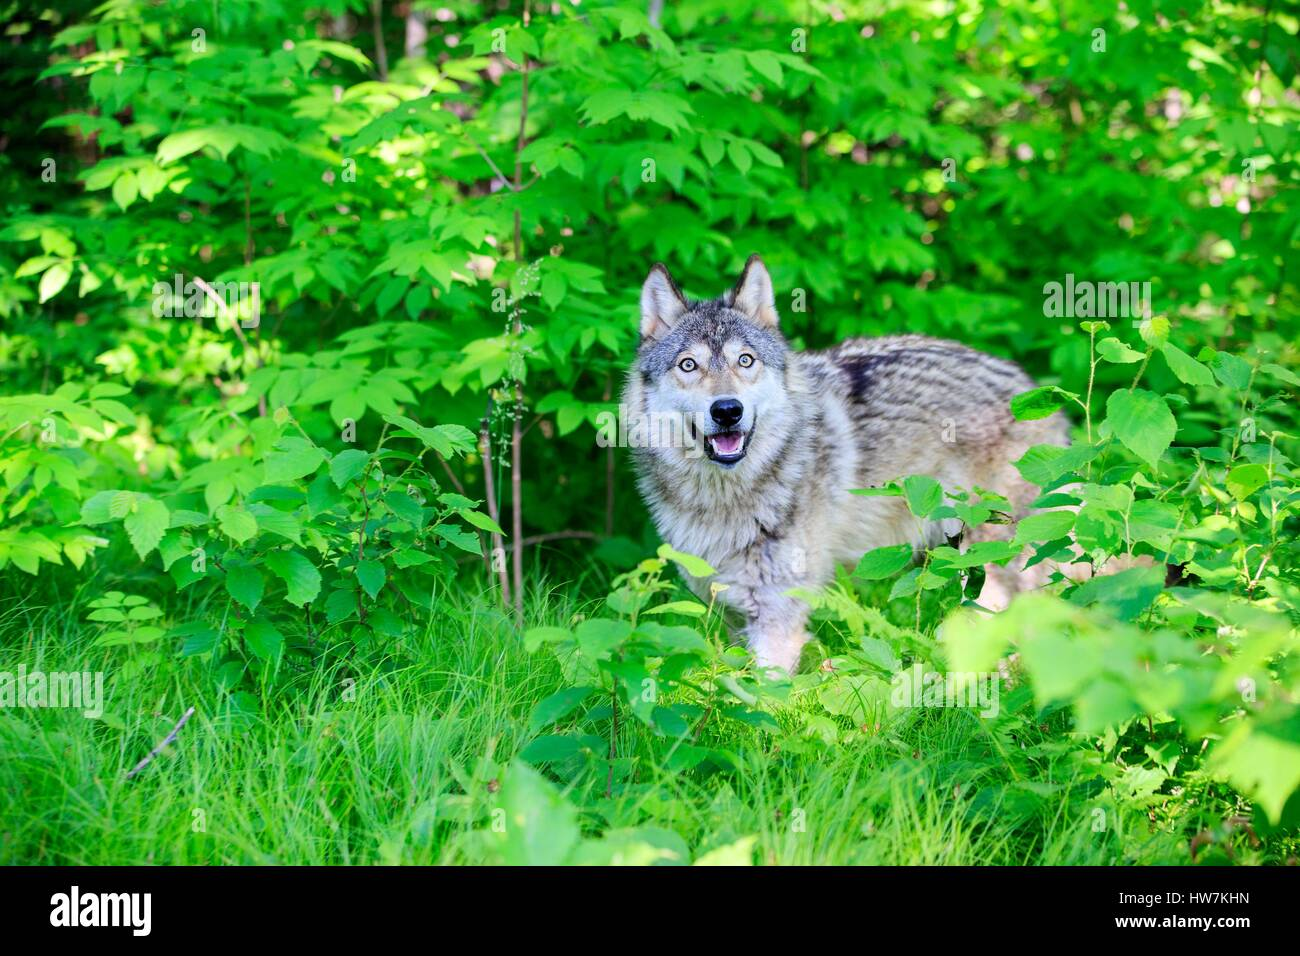 United States, Minnesota, Wolf or Gray Wolf or Grey Wolf (Canis lupus) - Stock Image